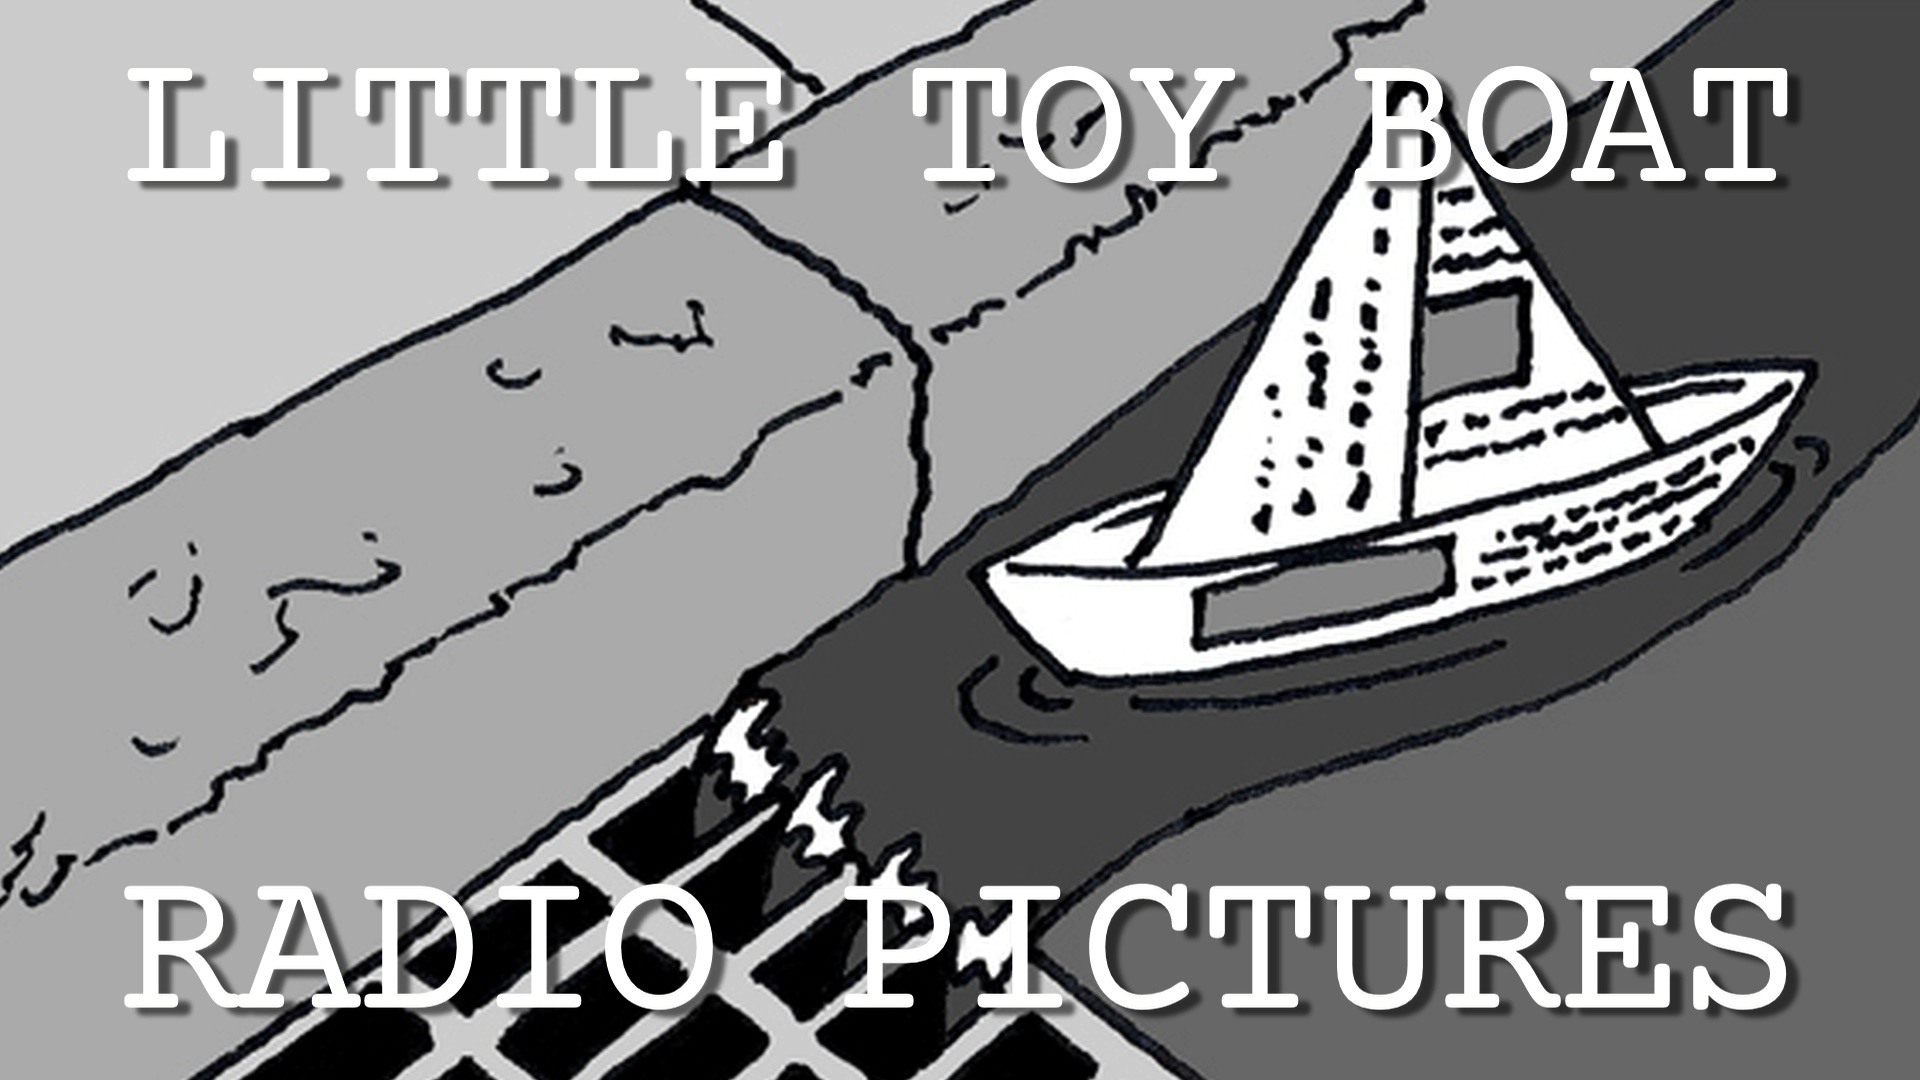 Welcome to Little Toy Boat